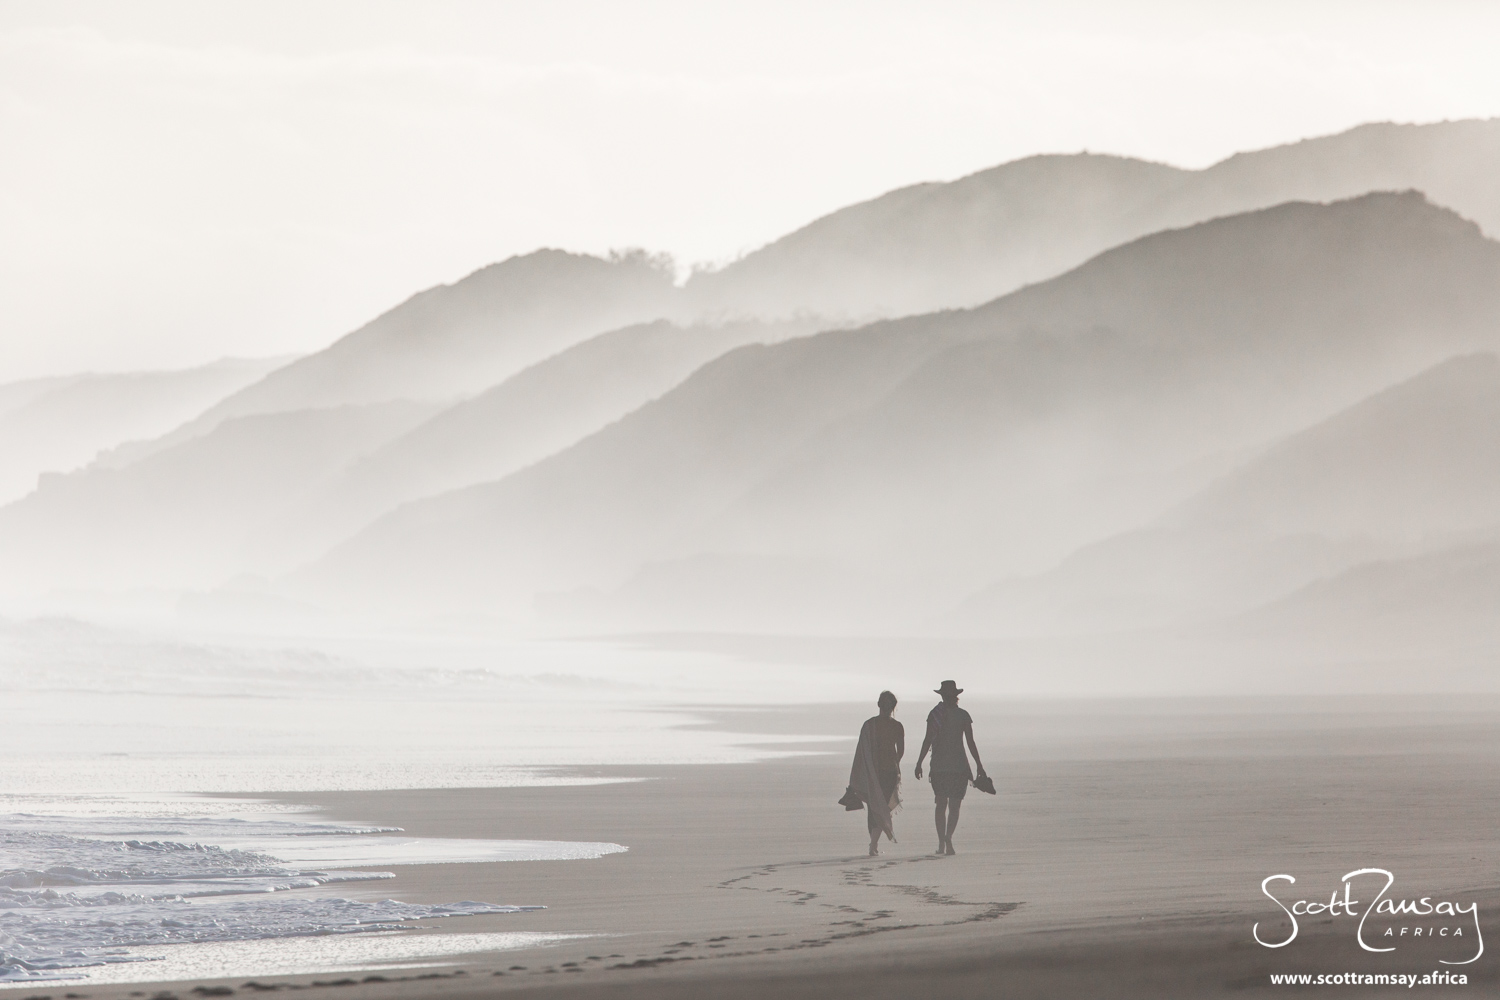 Joni and Helen walking along the ocean shoreline of Goukamma, with the high vegetated dunes in the background